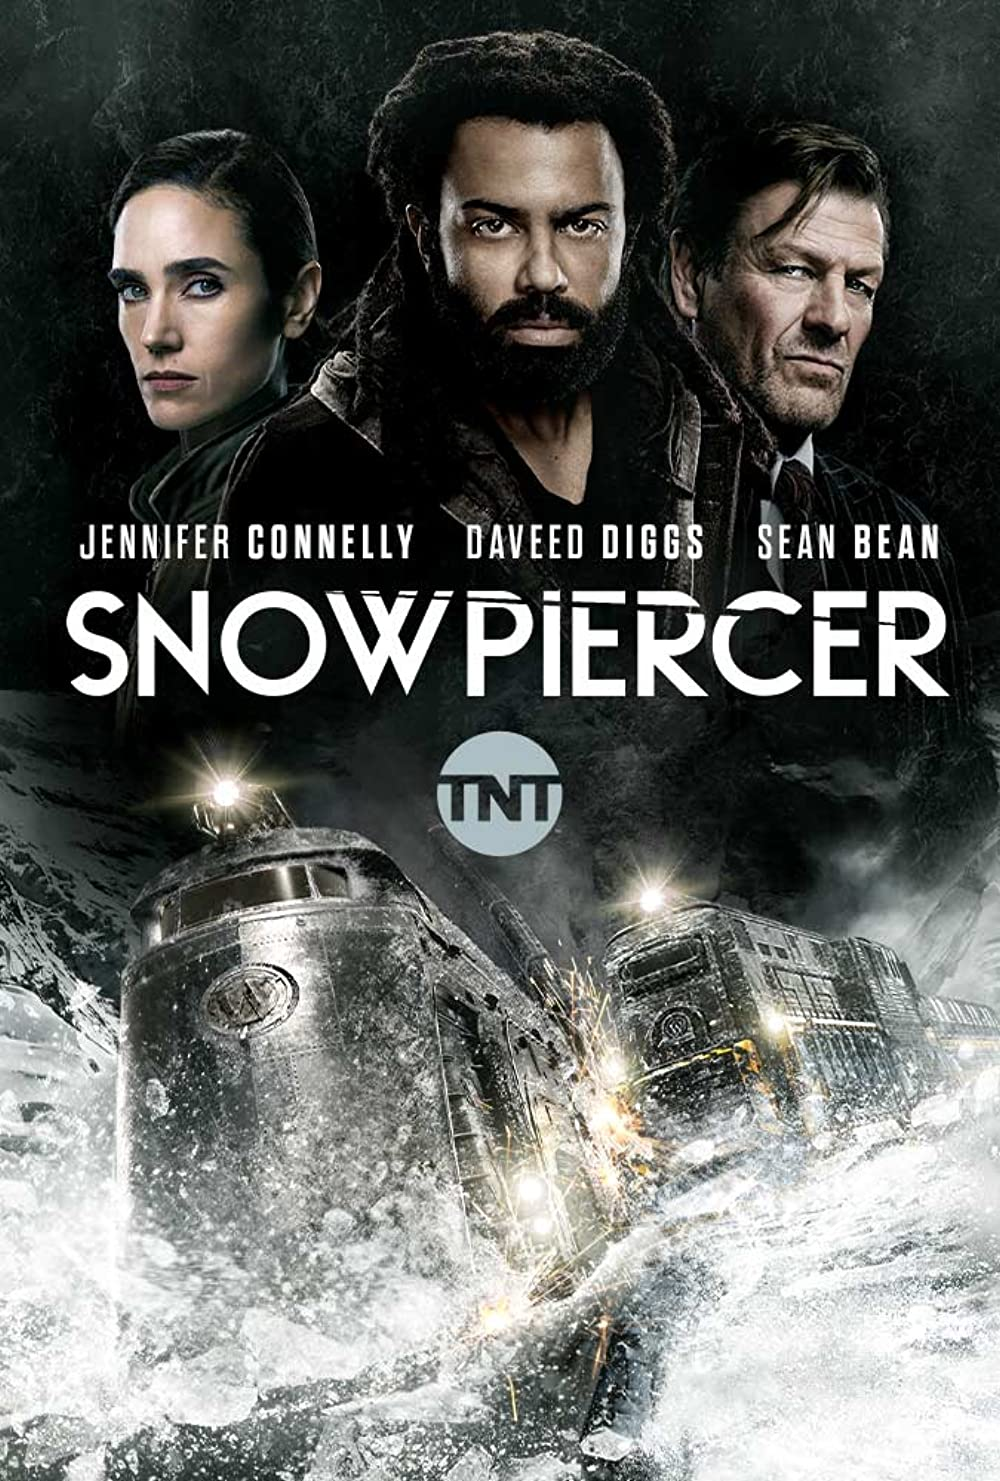 Snowpiercer 2021 S02EP01 Hindi Dual Audio NF Series 720p HDRip ESubs 335MB Download